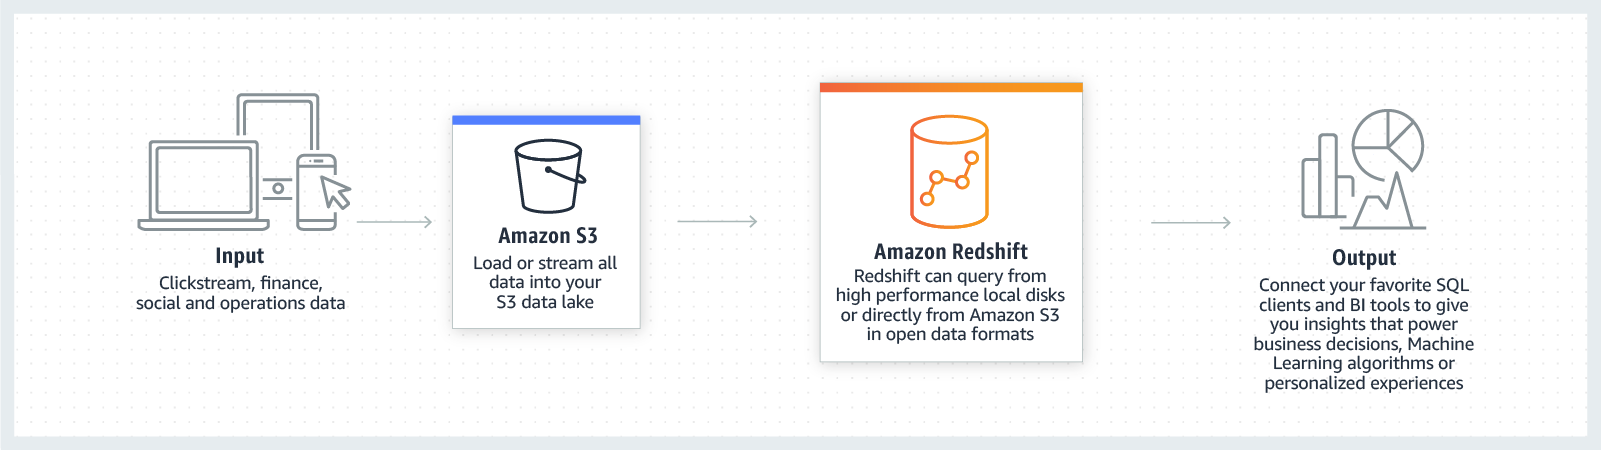 product-page-diagram-AWS-Redshift-Launch_How-It-Works-2@1.5x